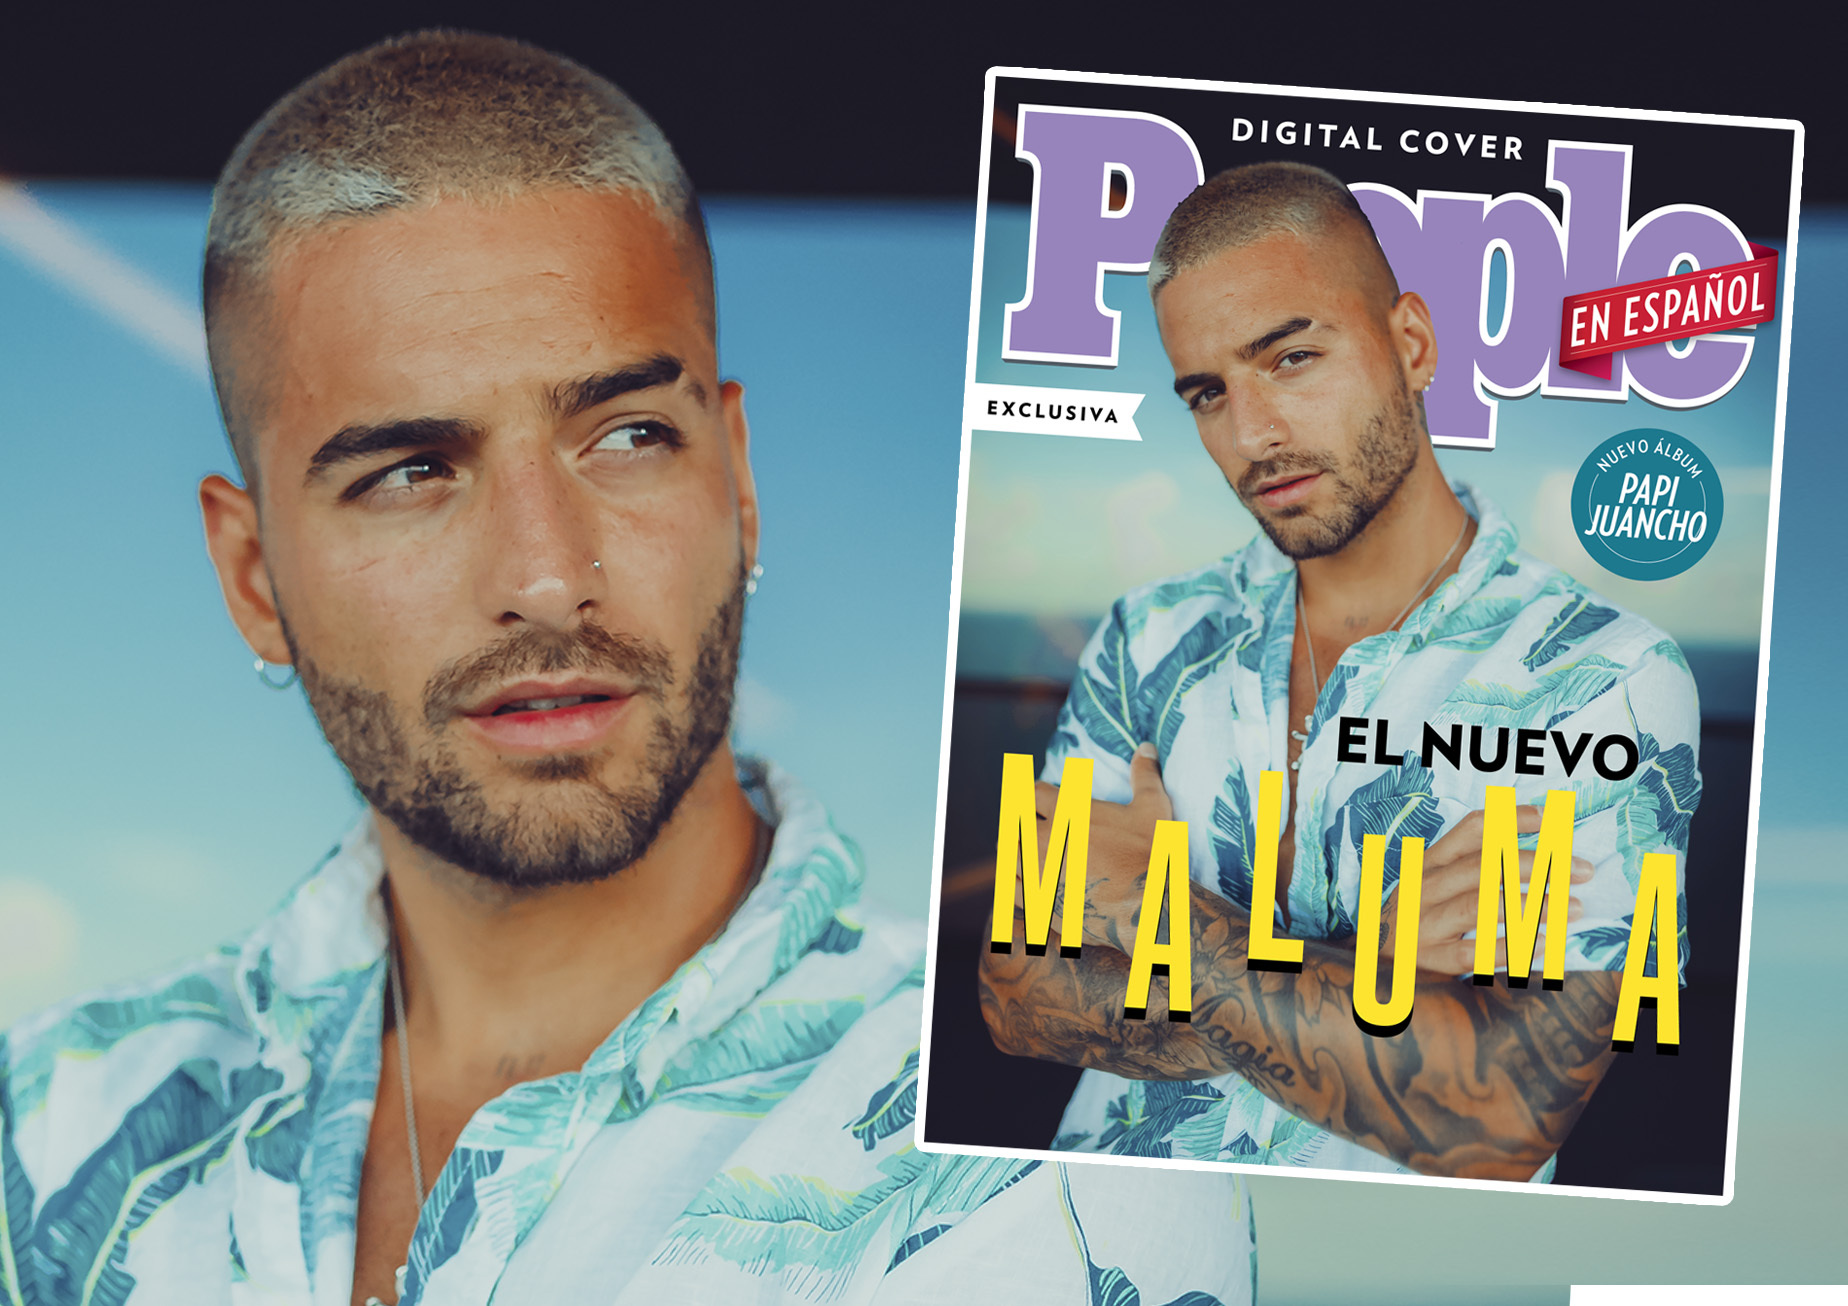 Maluma promo/homepage new (DO NOT REUSE)